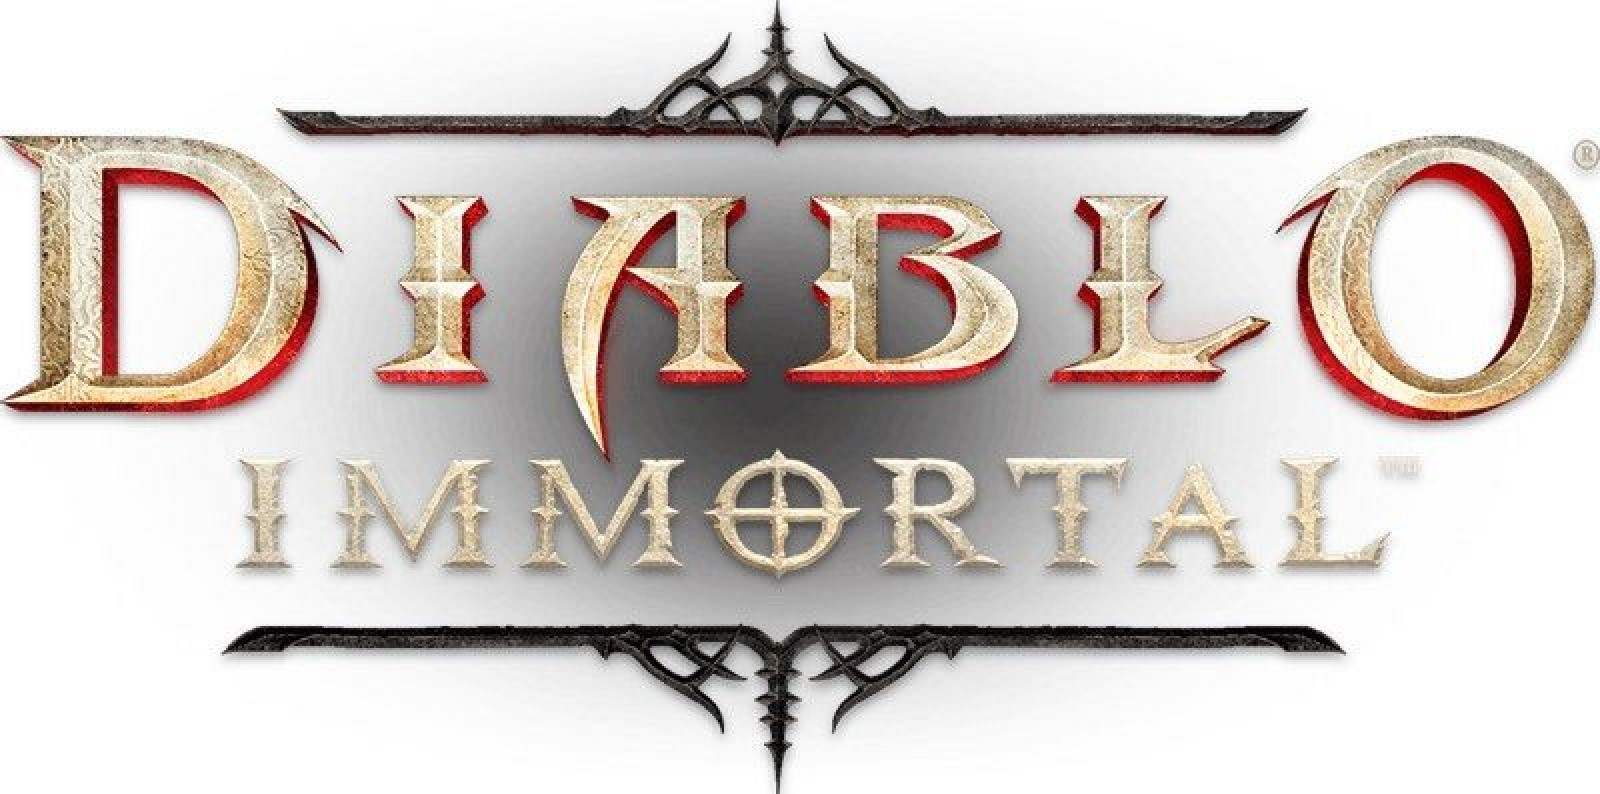 https://xgm.guru/p/diablo/diablo-immortal-blizzcon-2k18